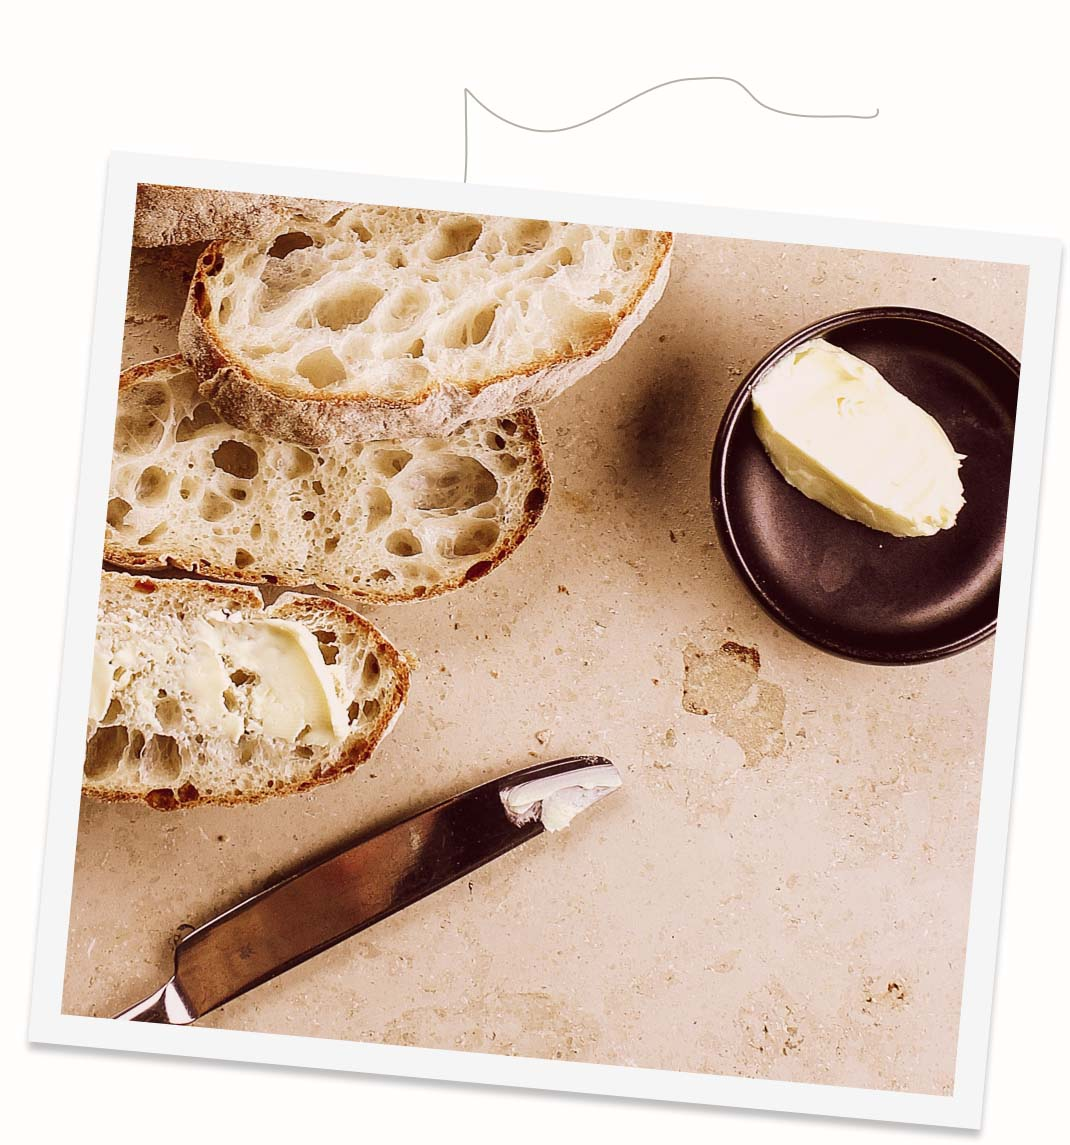 Photo of sliced sourdough bread and butter